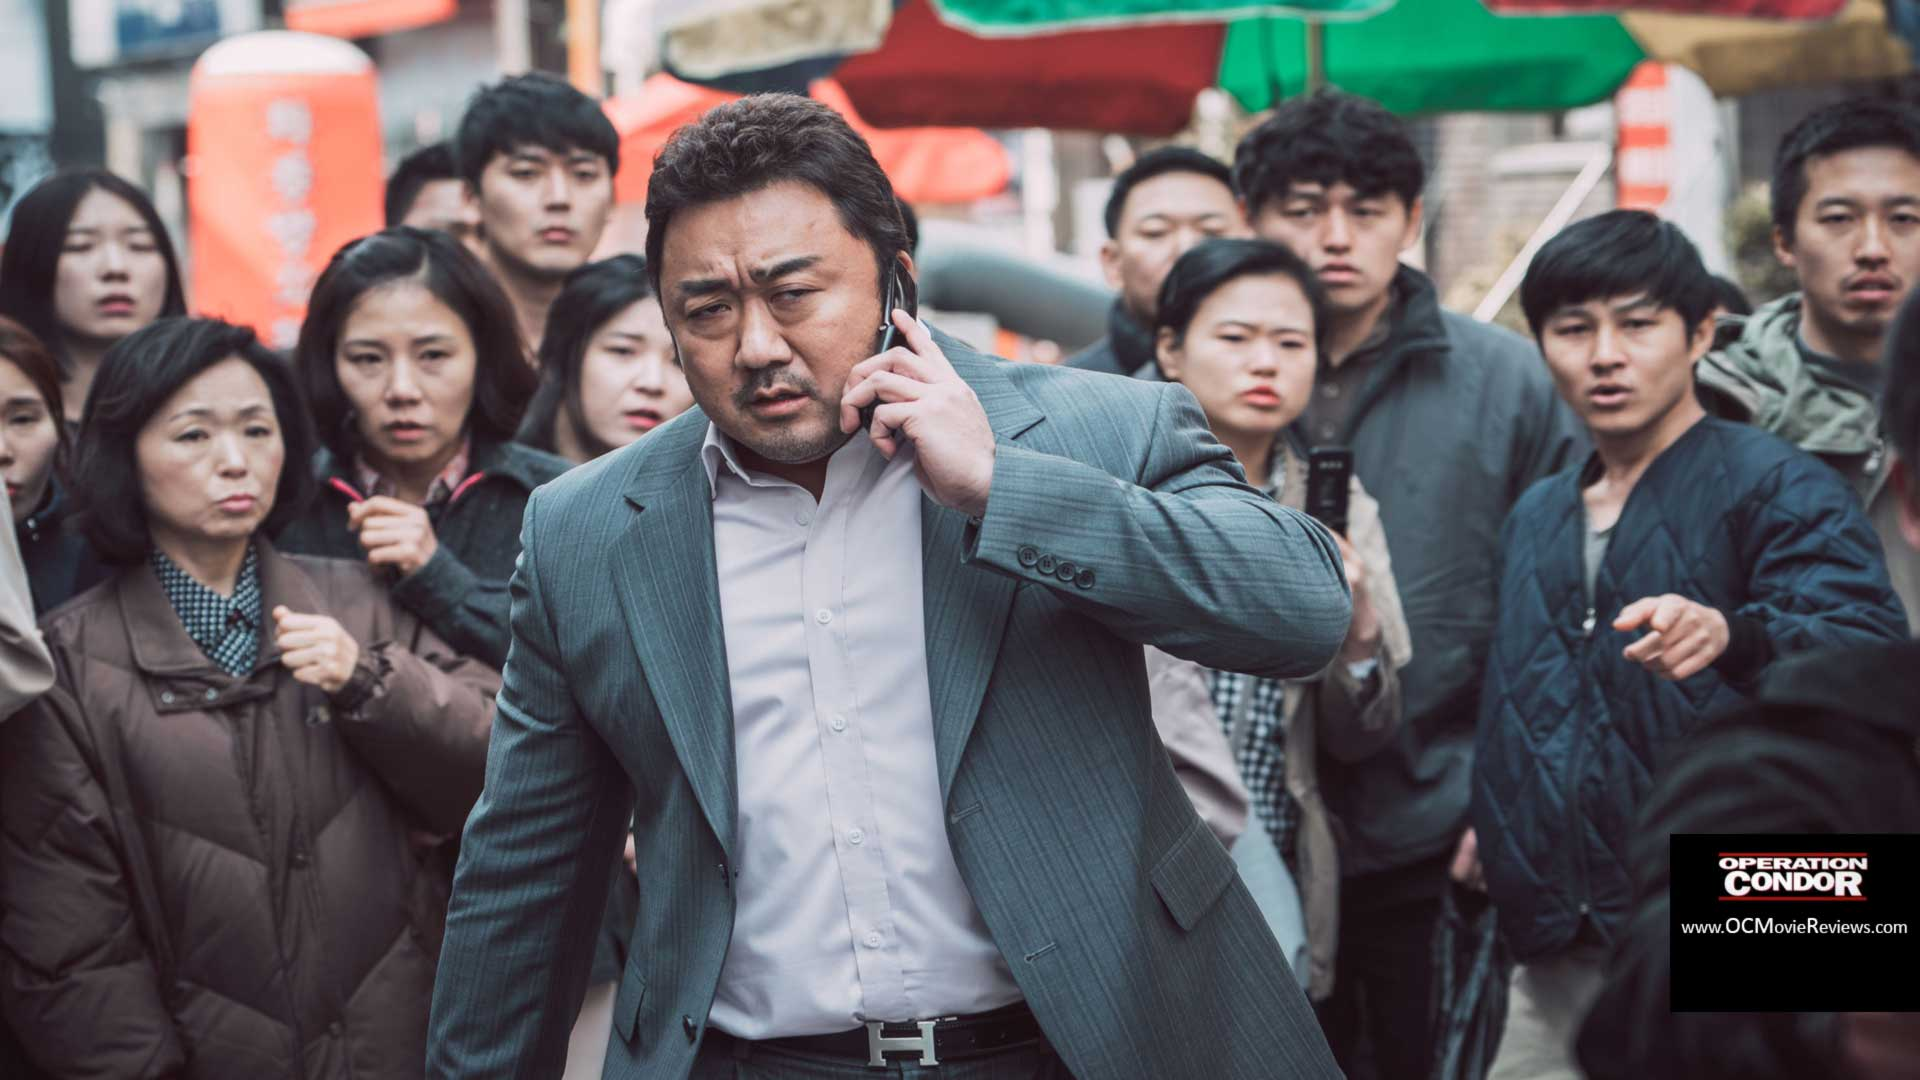 The Outlaws Review – Garibong-dong Style - OC Movie Reviews - Movie Reviews, Movie News, Documentary Reviews, Short Films, Short Film Reviews, Trailers, Movie Trailers, Interviews, film reviews, film news, hollywood, indie films, documentaries